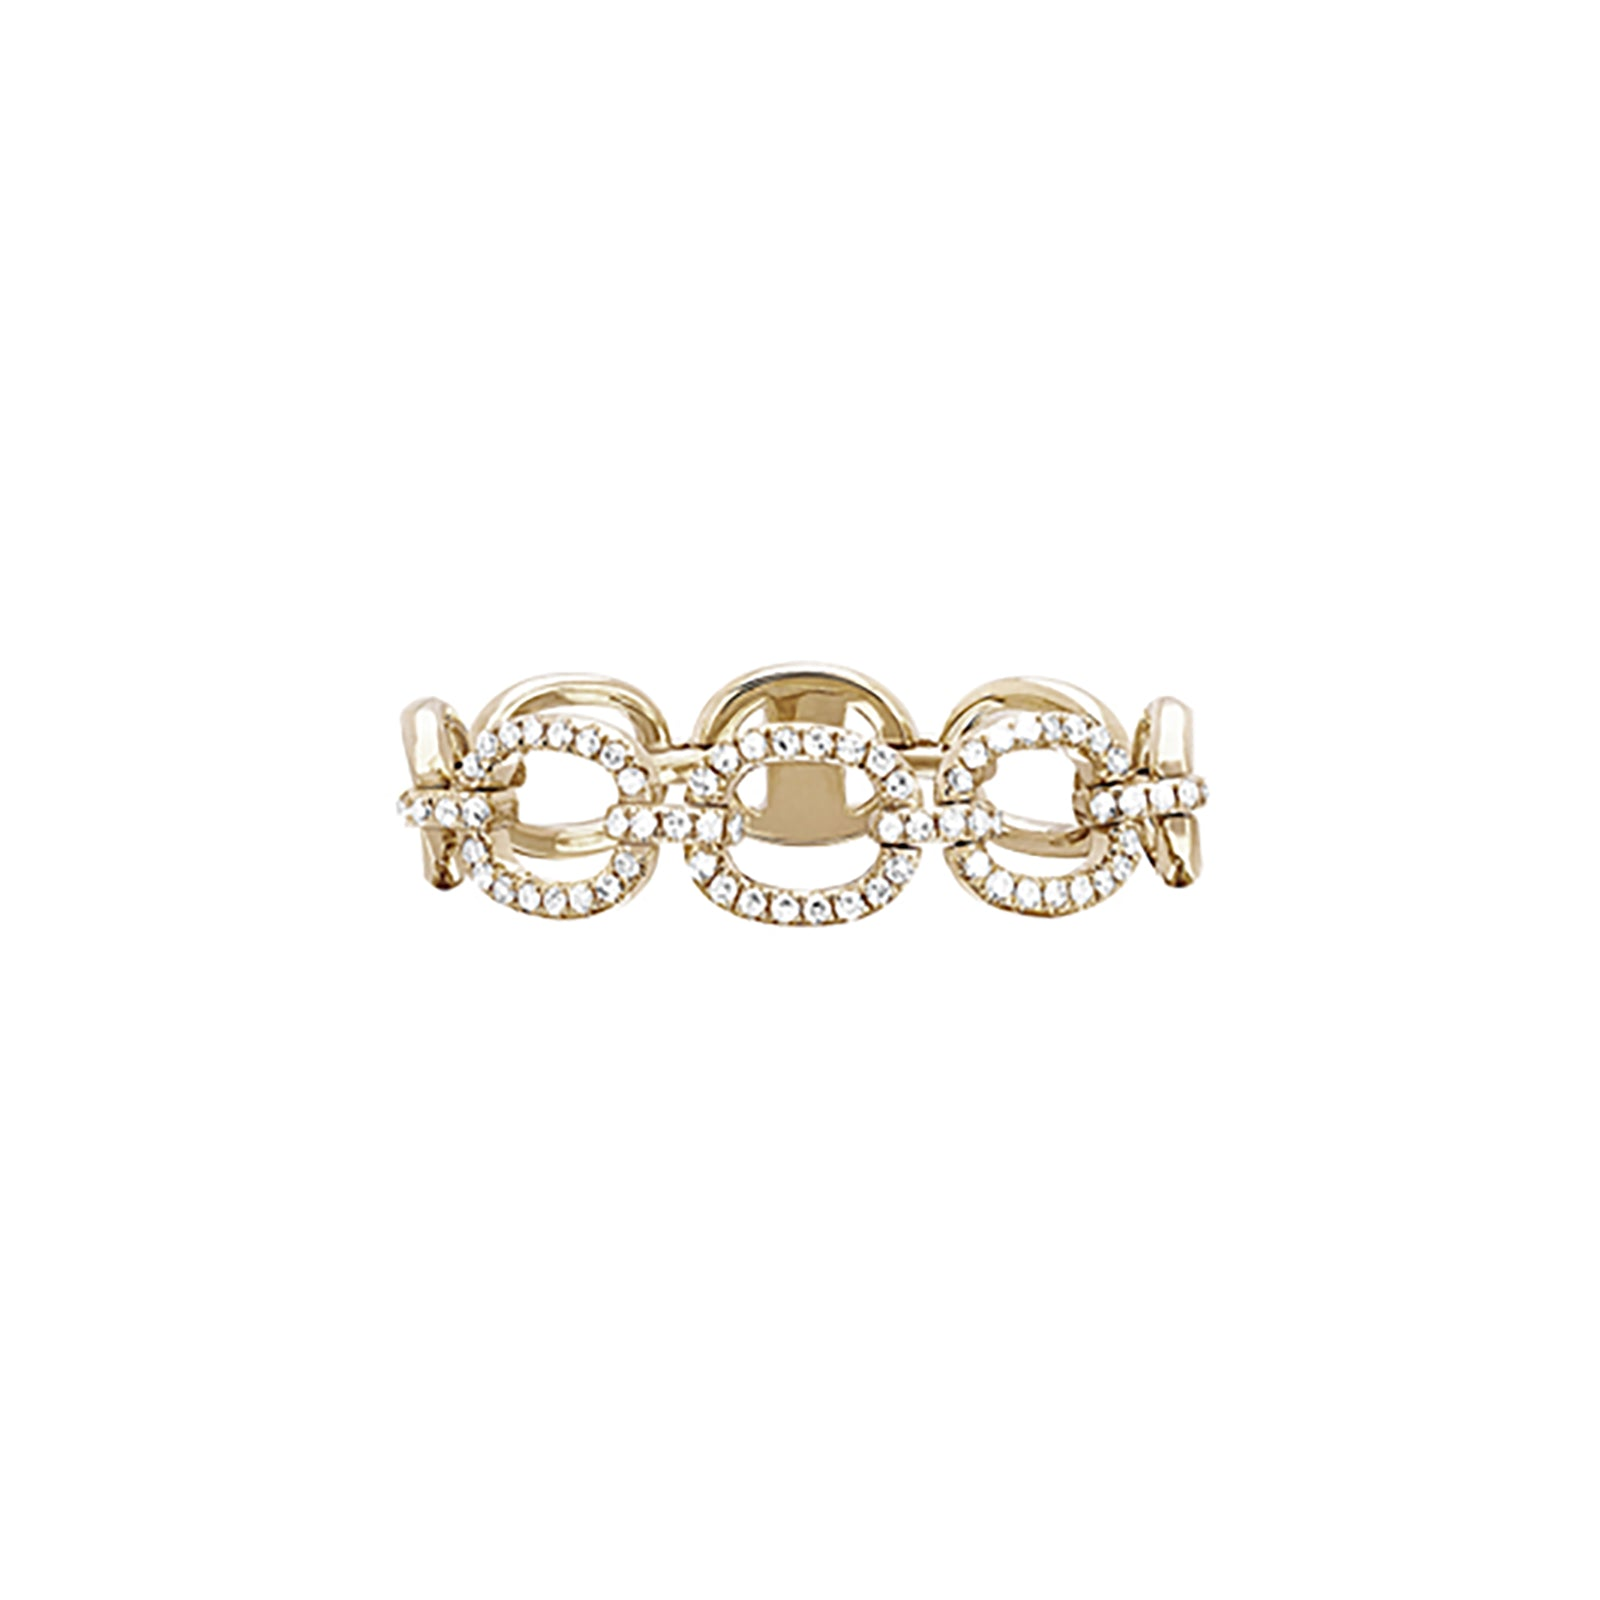 EF Collection Chain Link Diamond Ring - Yellow Gold - Rings - Broken English Jewelry